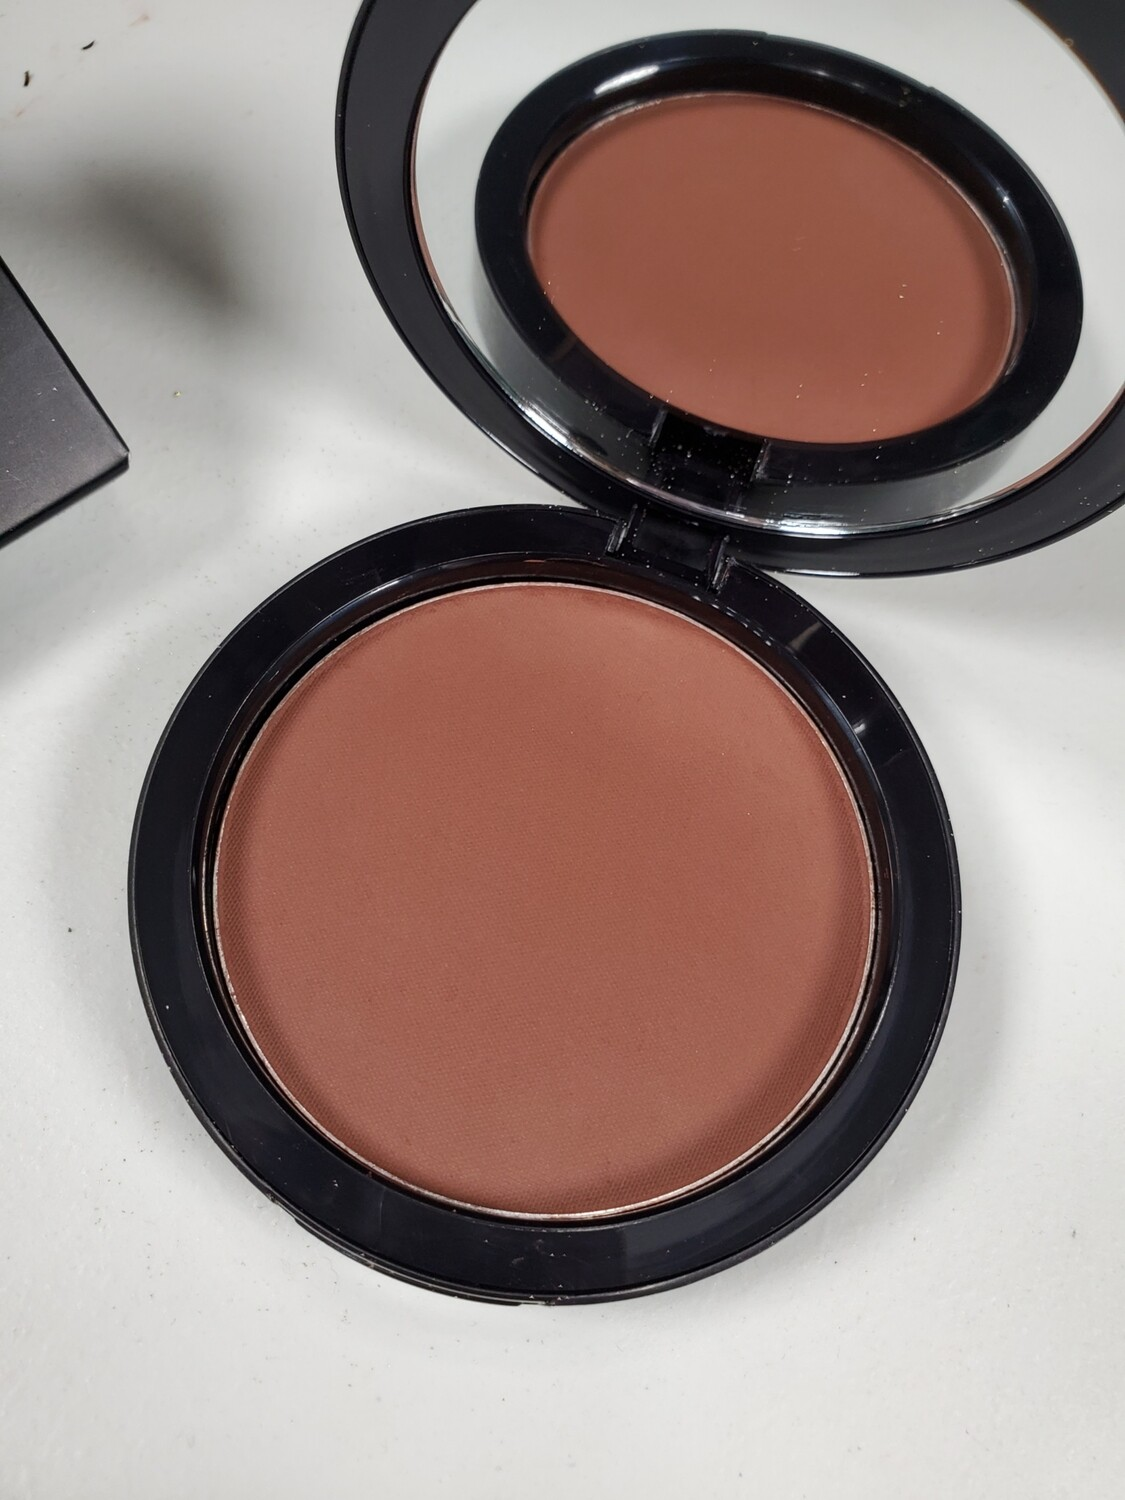 Mervo - Dual Blend Multi-Use Foundation/Contour Powder